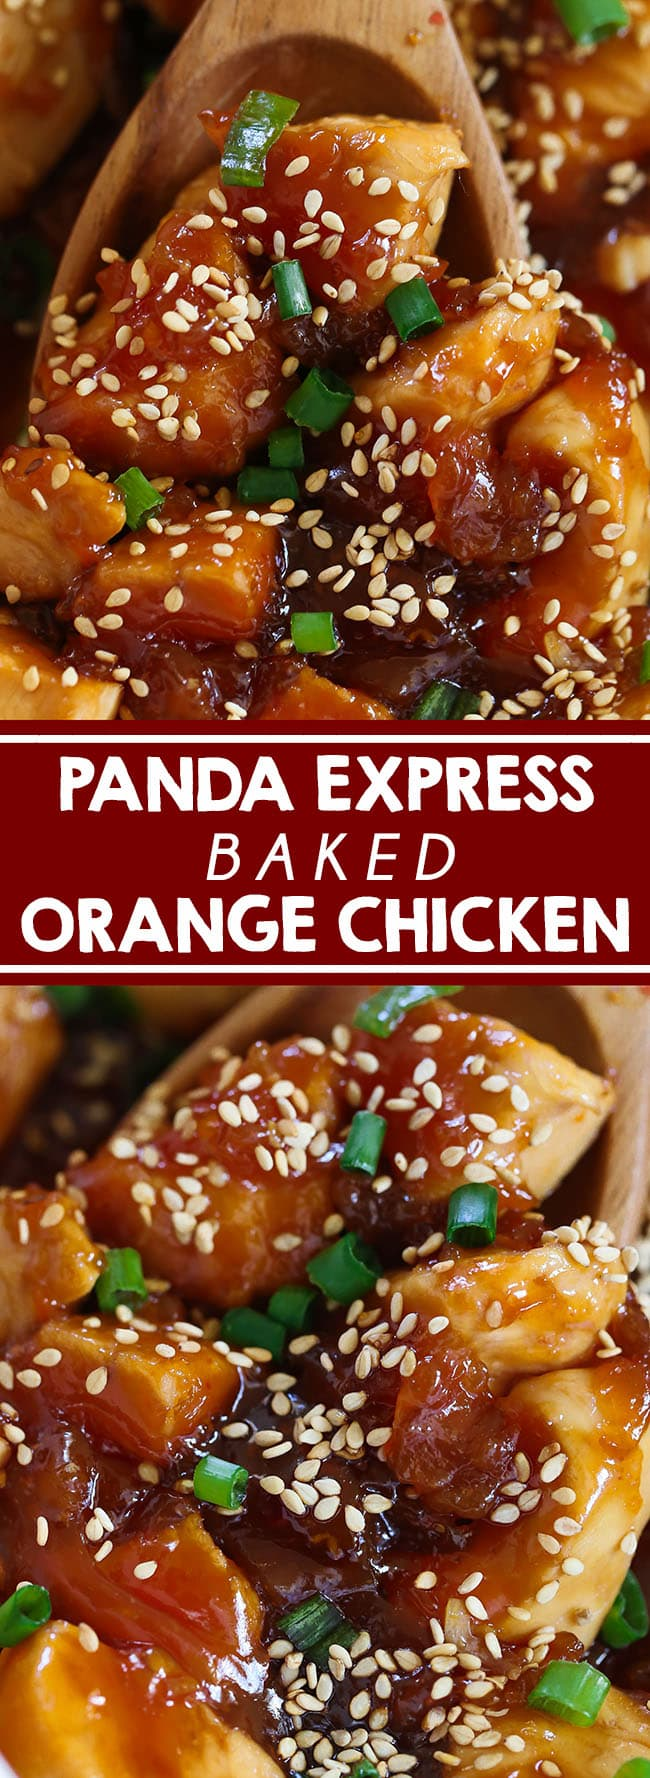 Panda Express Orange Chicken - A family favorite! Made in one dish and baked. Simple ingredients and amazing orange citrus flavor! #chinesefood #asianfood #chicken